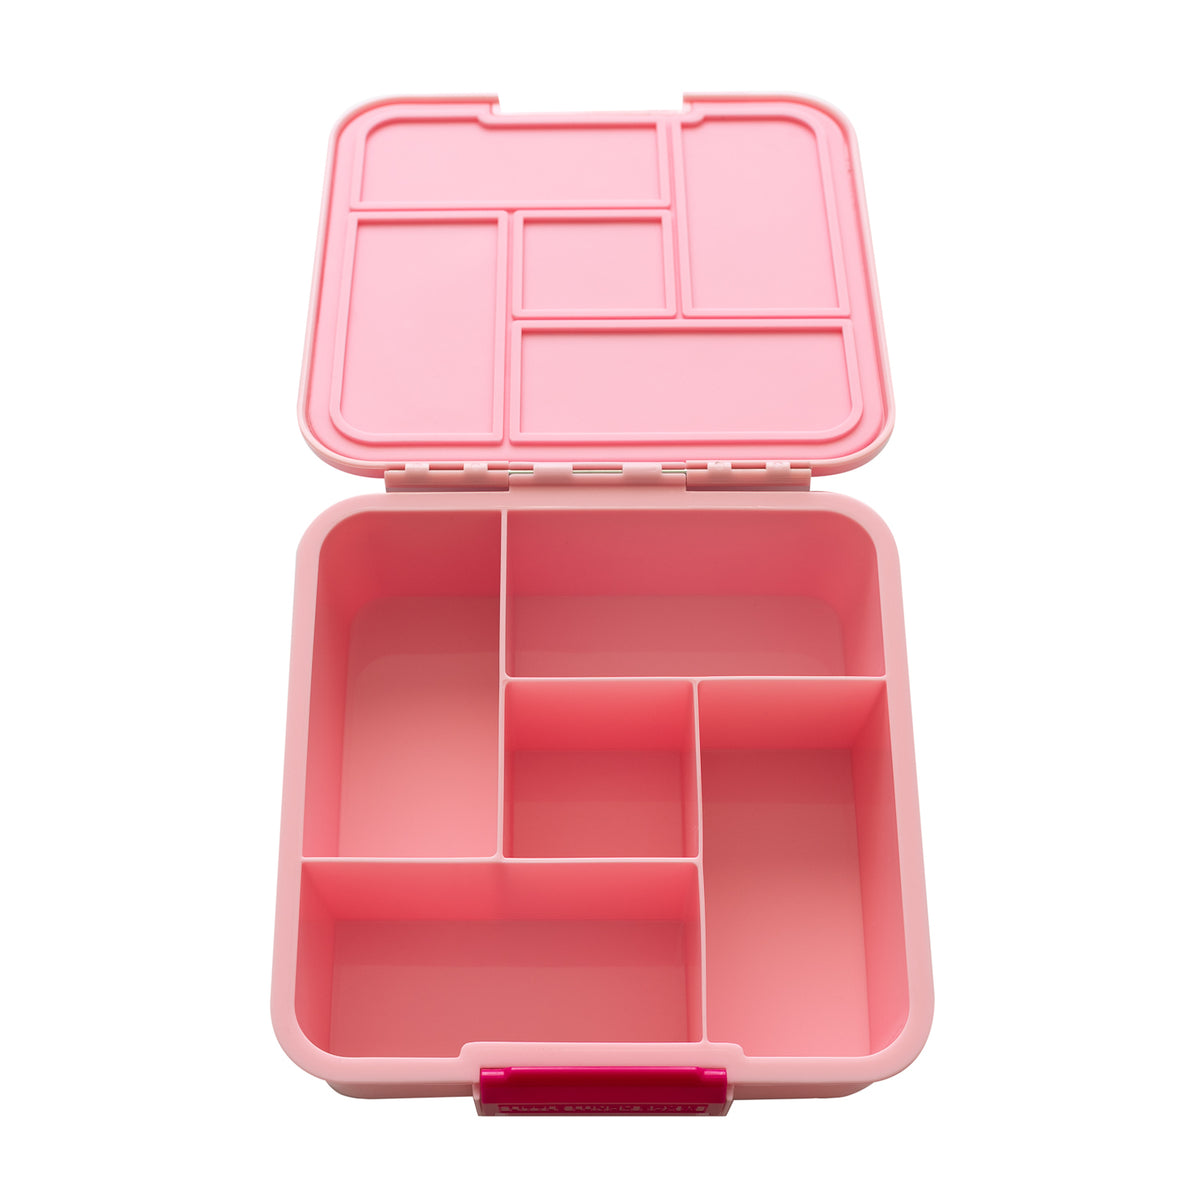 Bento Five - Kitty-Lunchbox-Lunchbox Mini